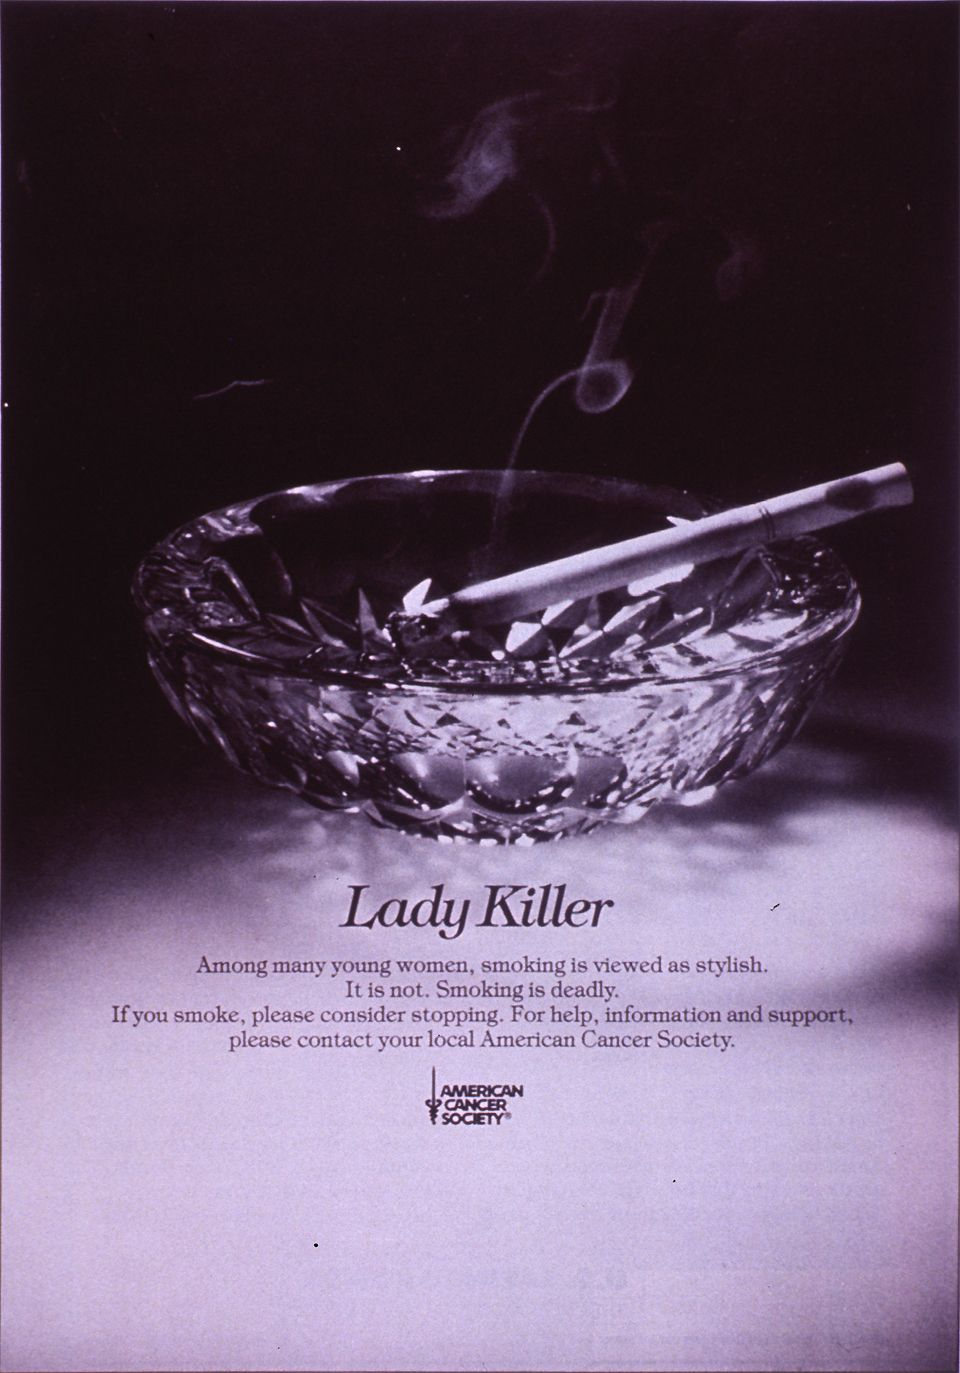 """1986 poster from the American Cancer Society - """"Lady Killer"""""""